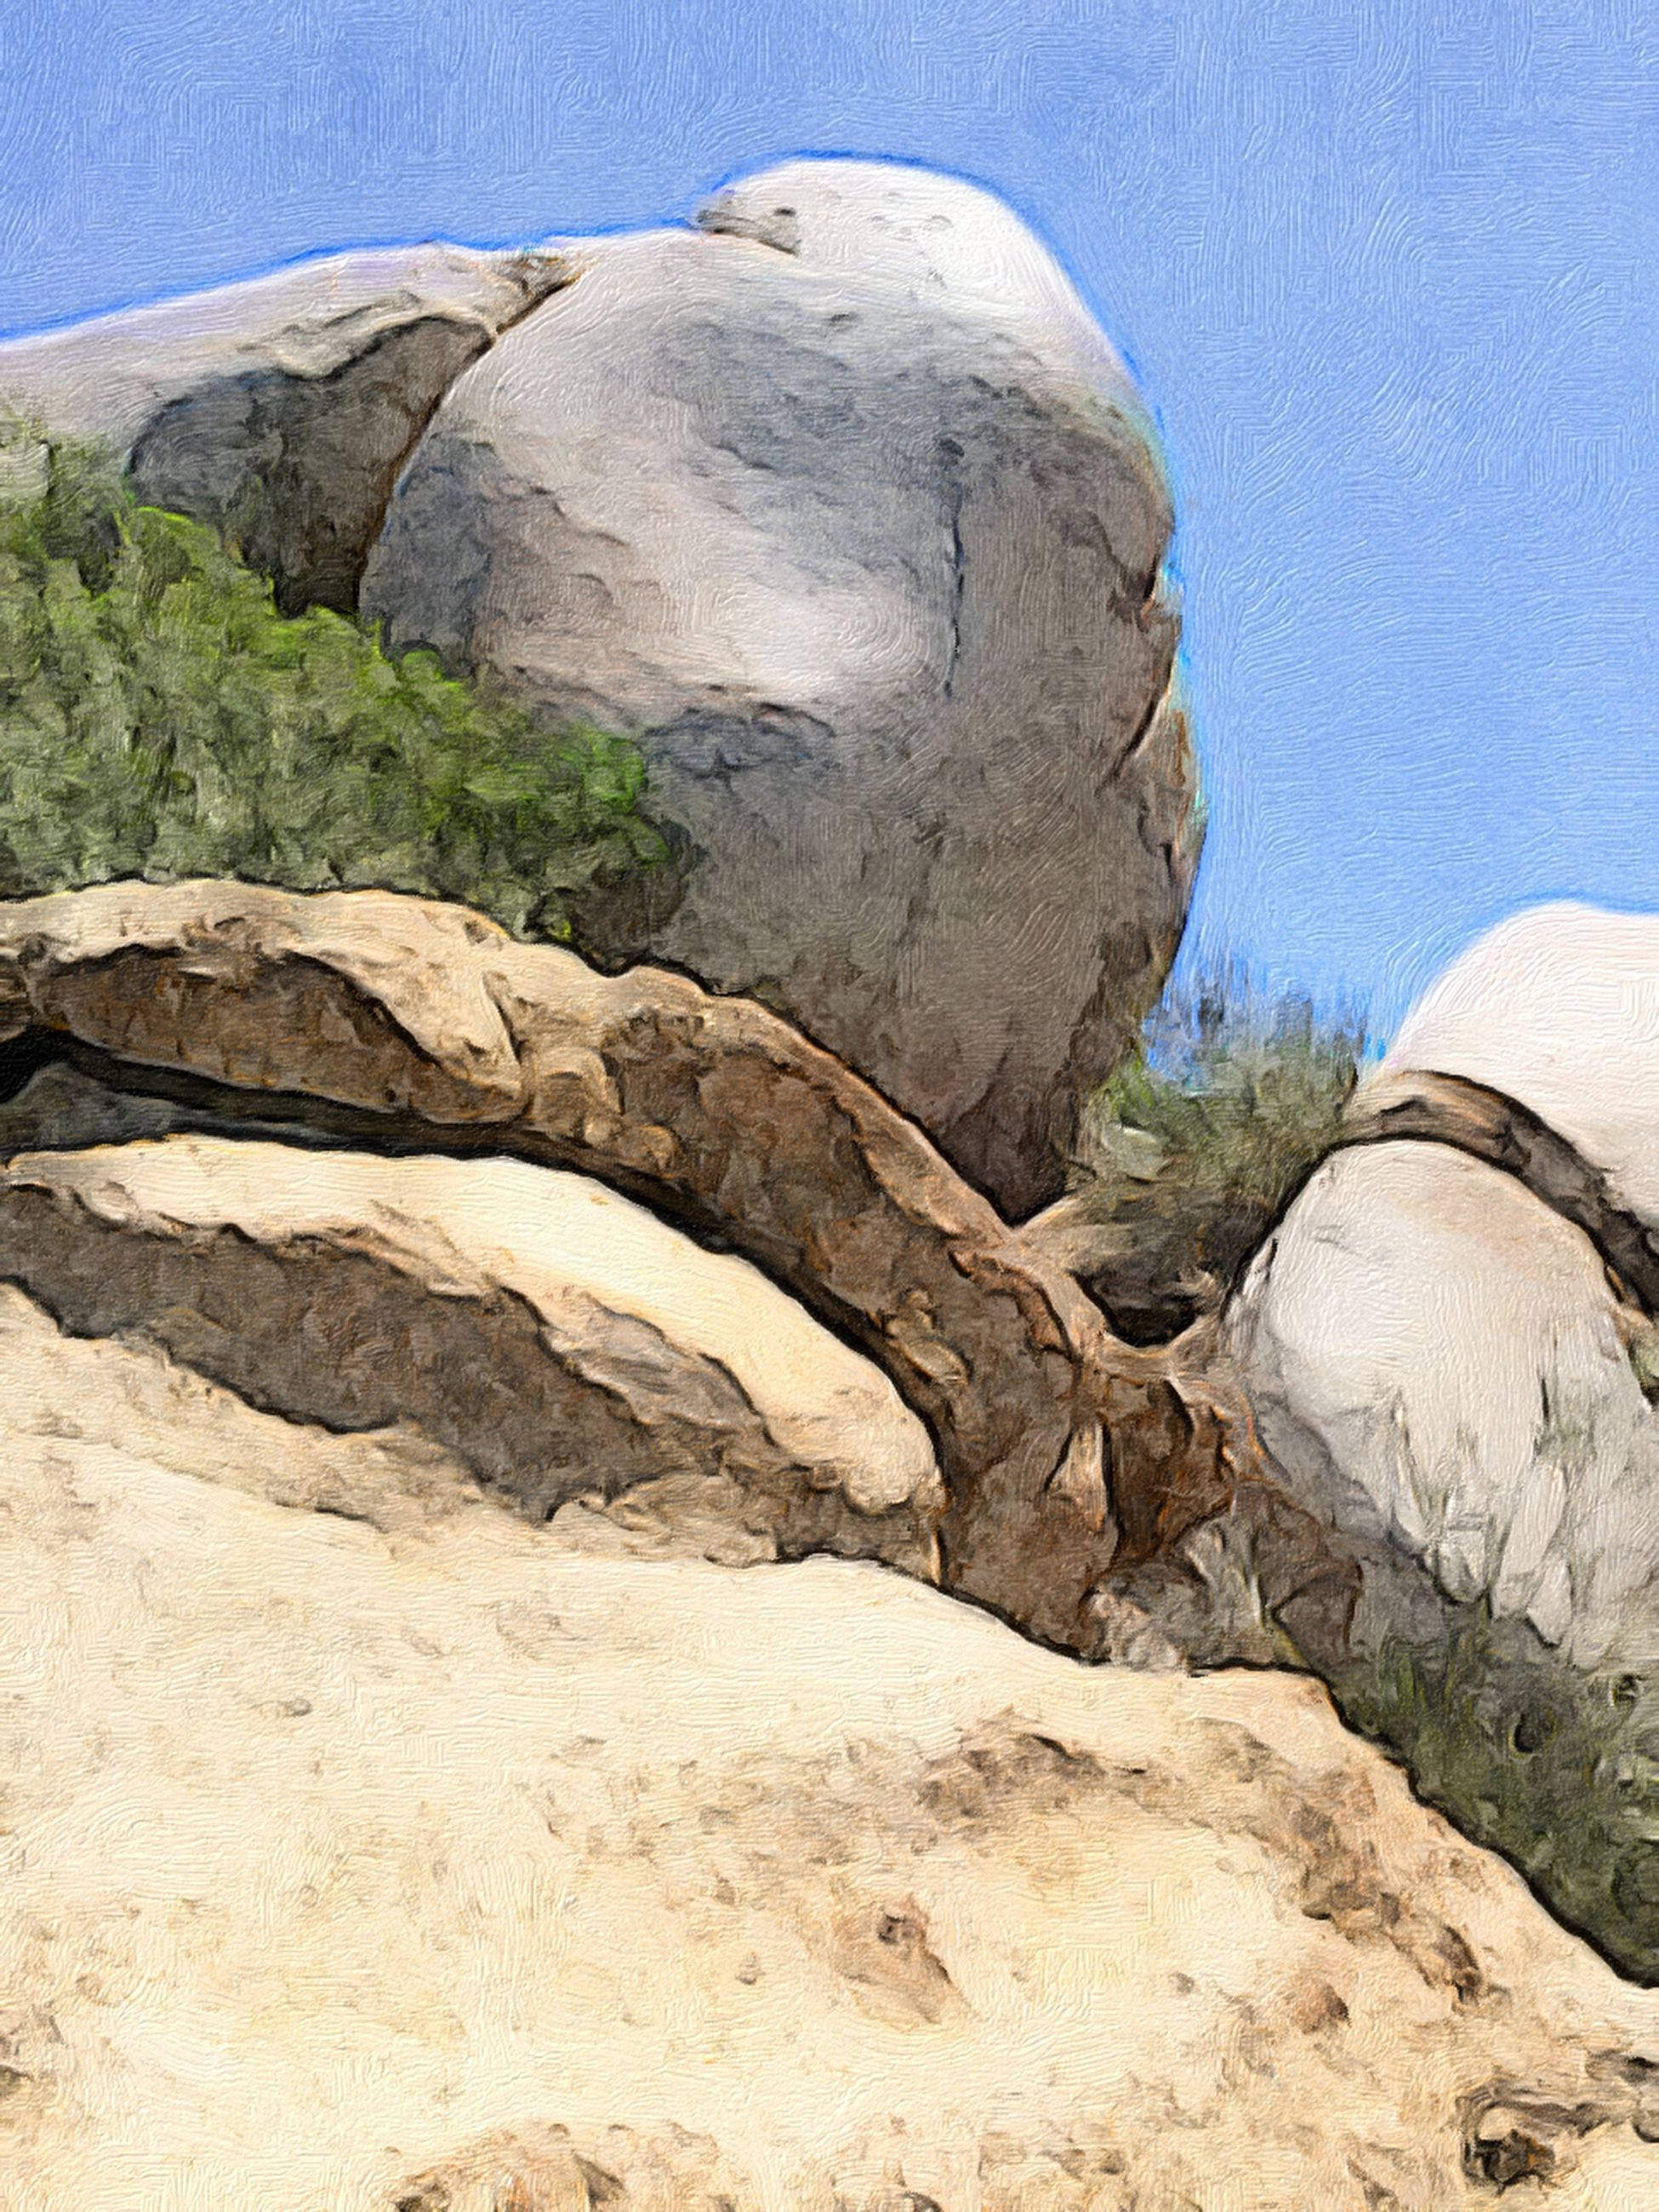 blue, rock - object, textured, low angle view, nature, rock formation, rough, tranquility, clear sky, day, no people, sunlight, outdoors, beauty in nature, rock, close-up, natural pattern, stone - object, sky, pattern